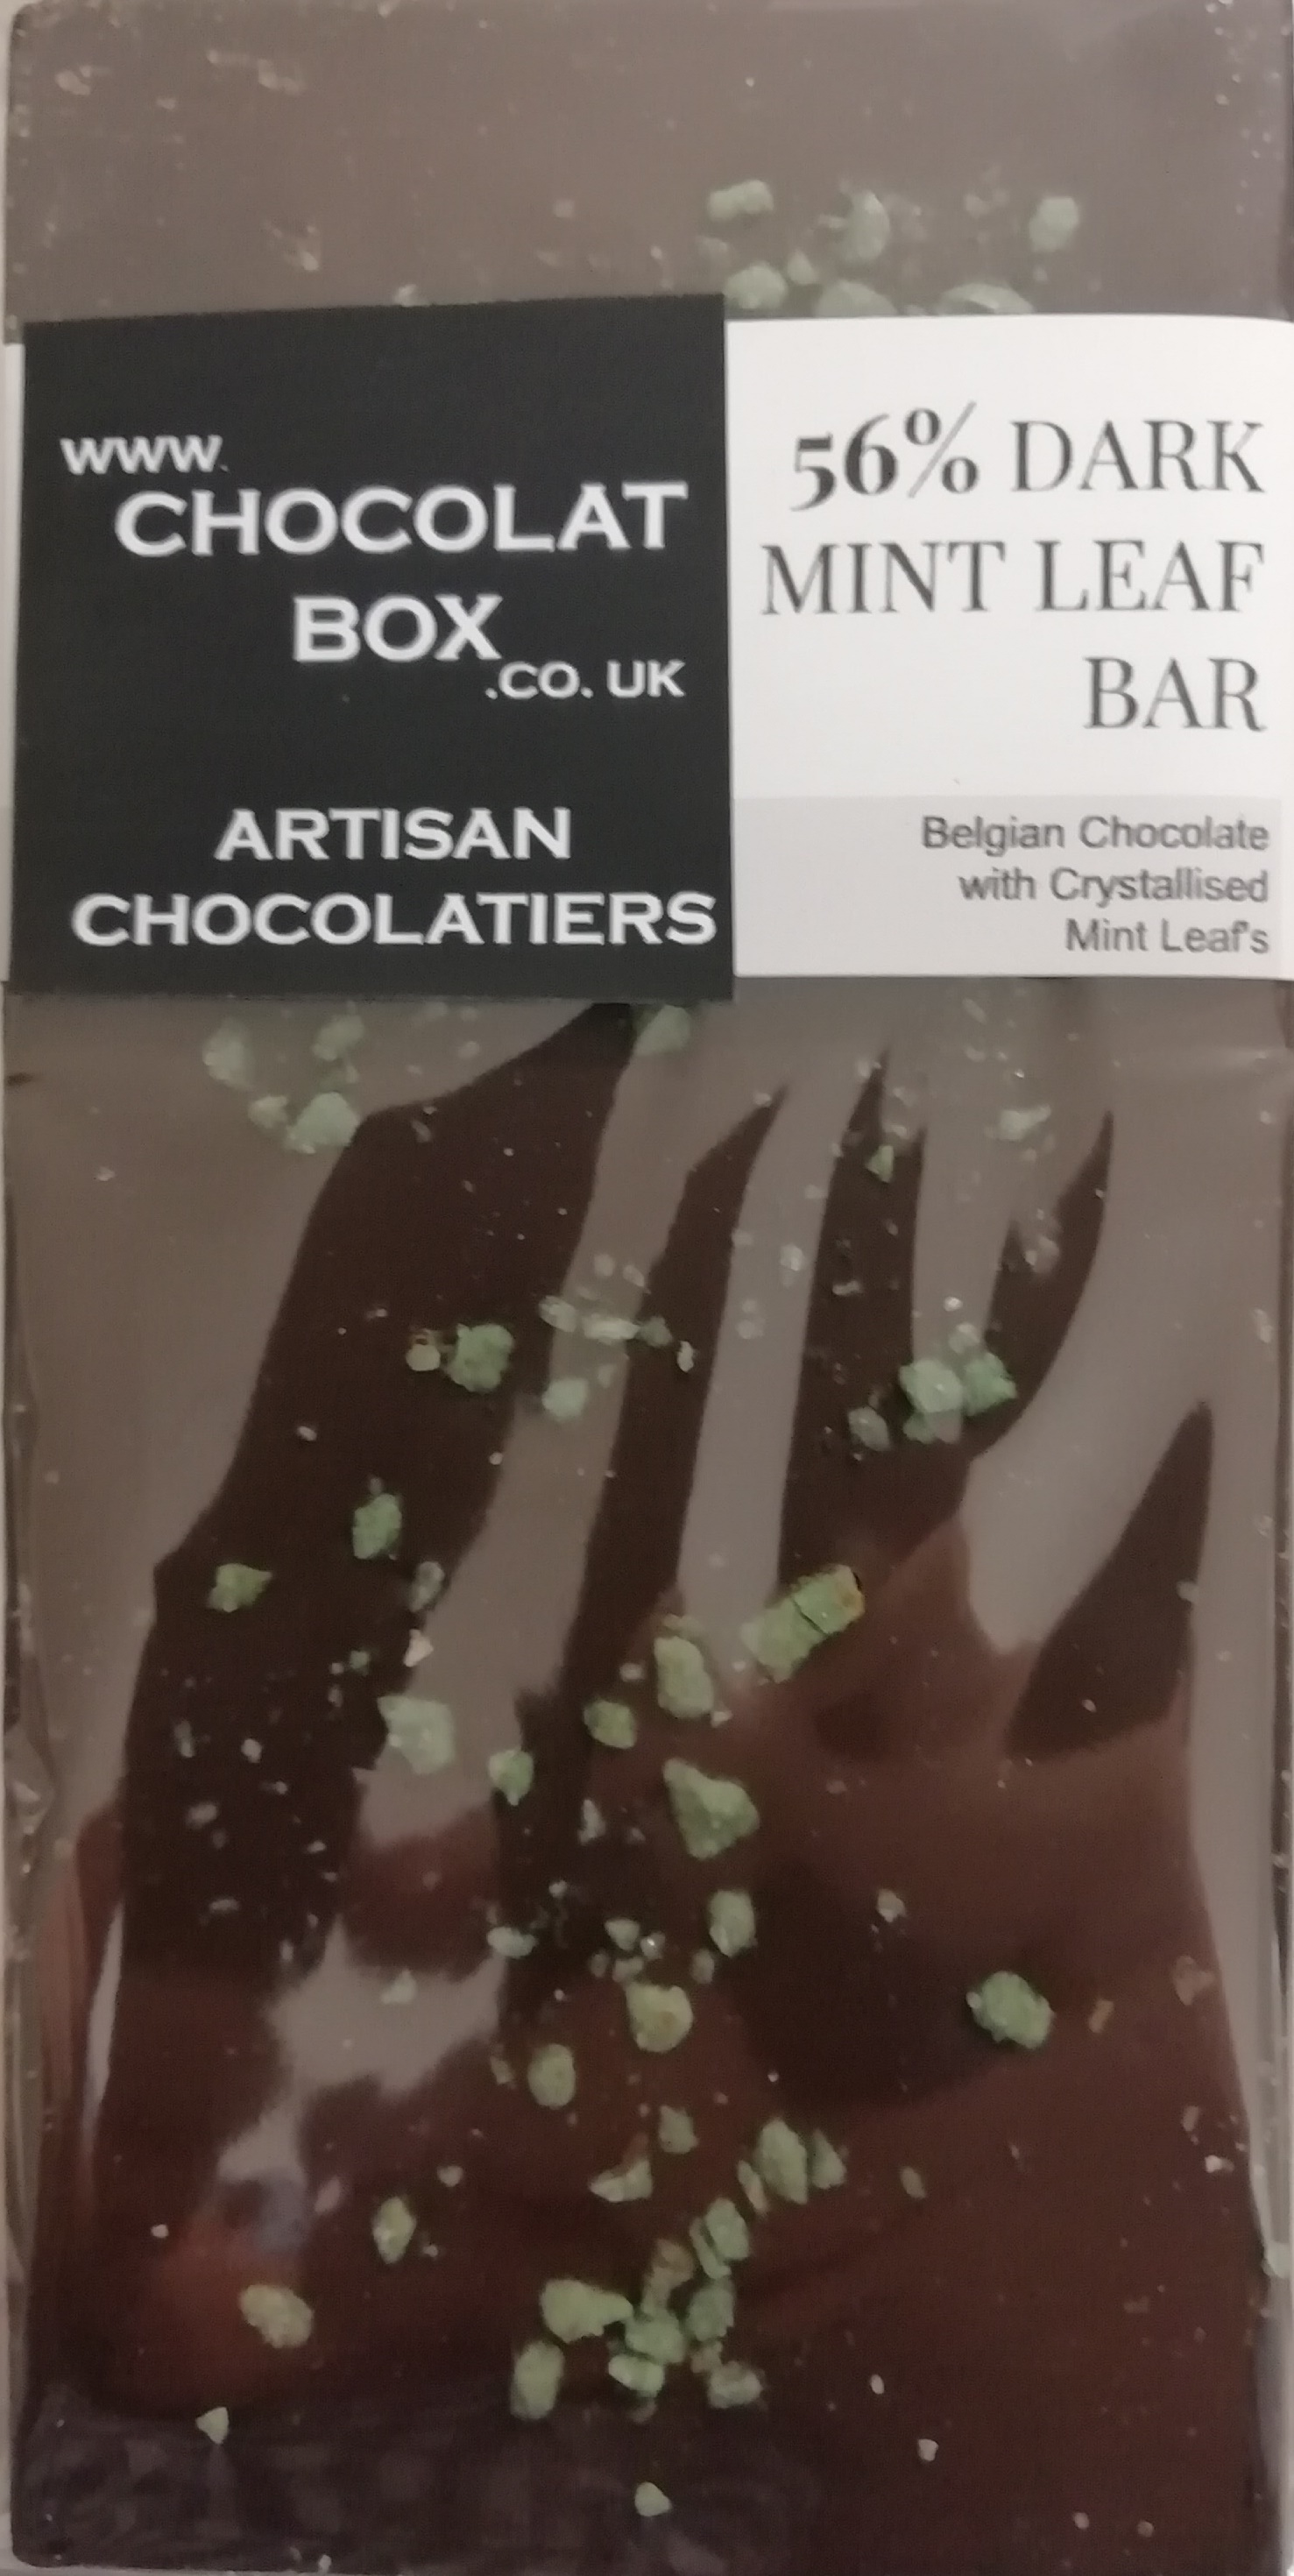 56% DARK MINT LEAF BAR